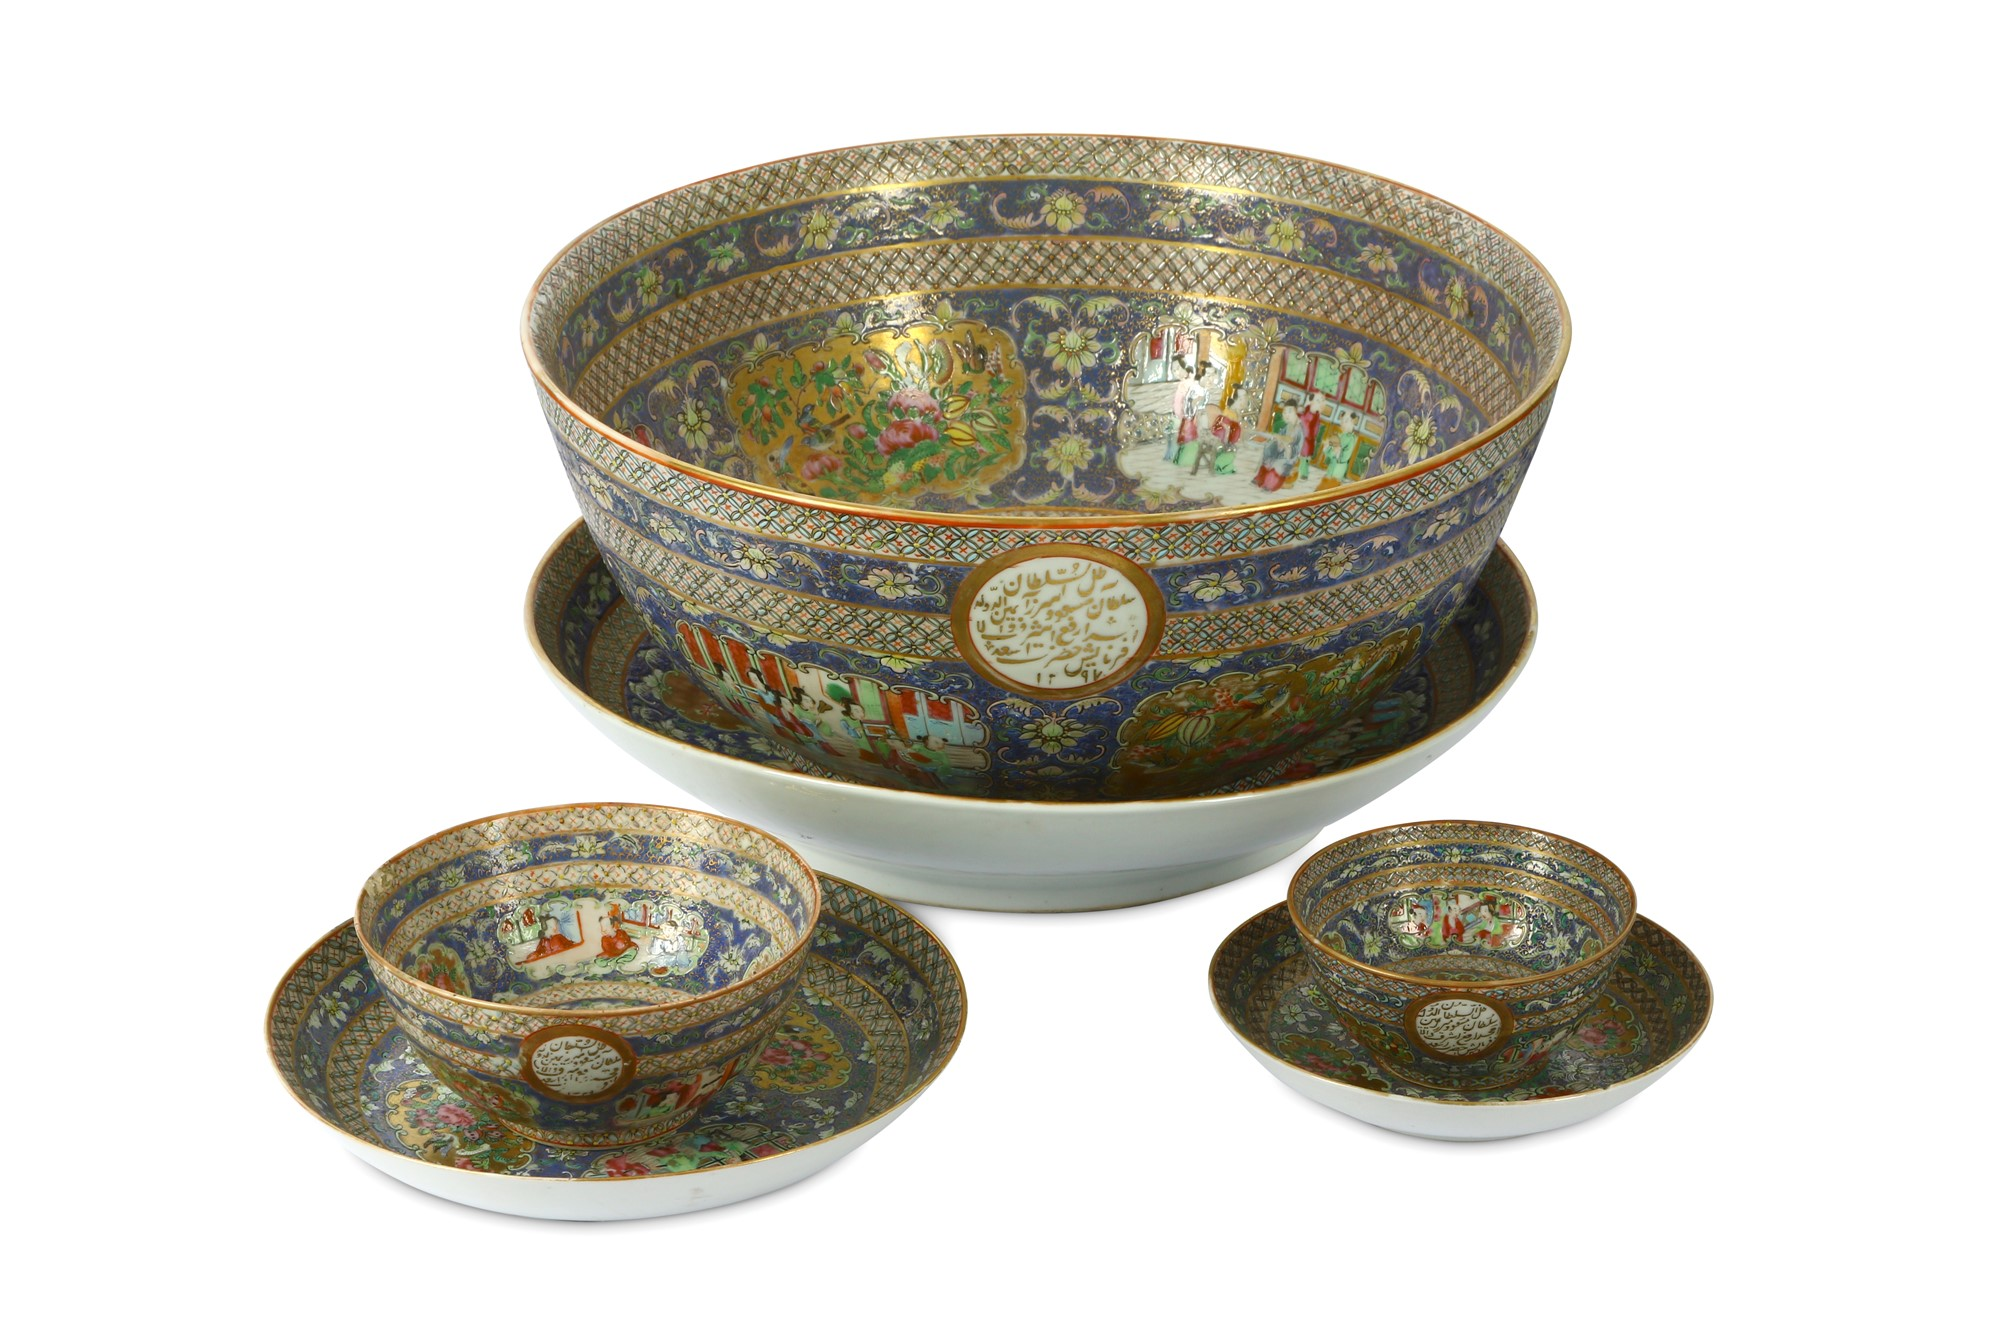 A set of three porcelain bowls and saucers with 'famille rose' decoration from the Qajar Prince Mas'ud Mirza zill al-sultan's service